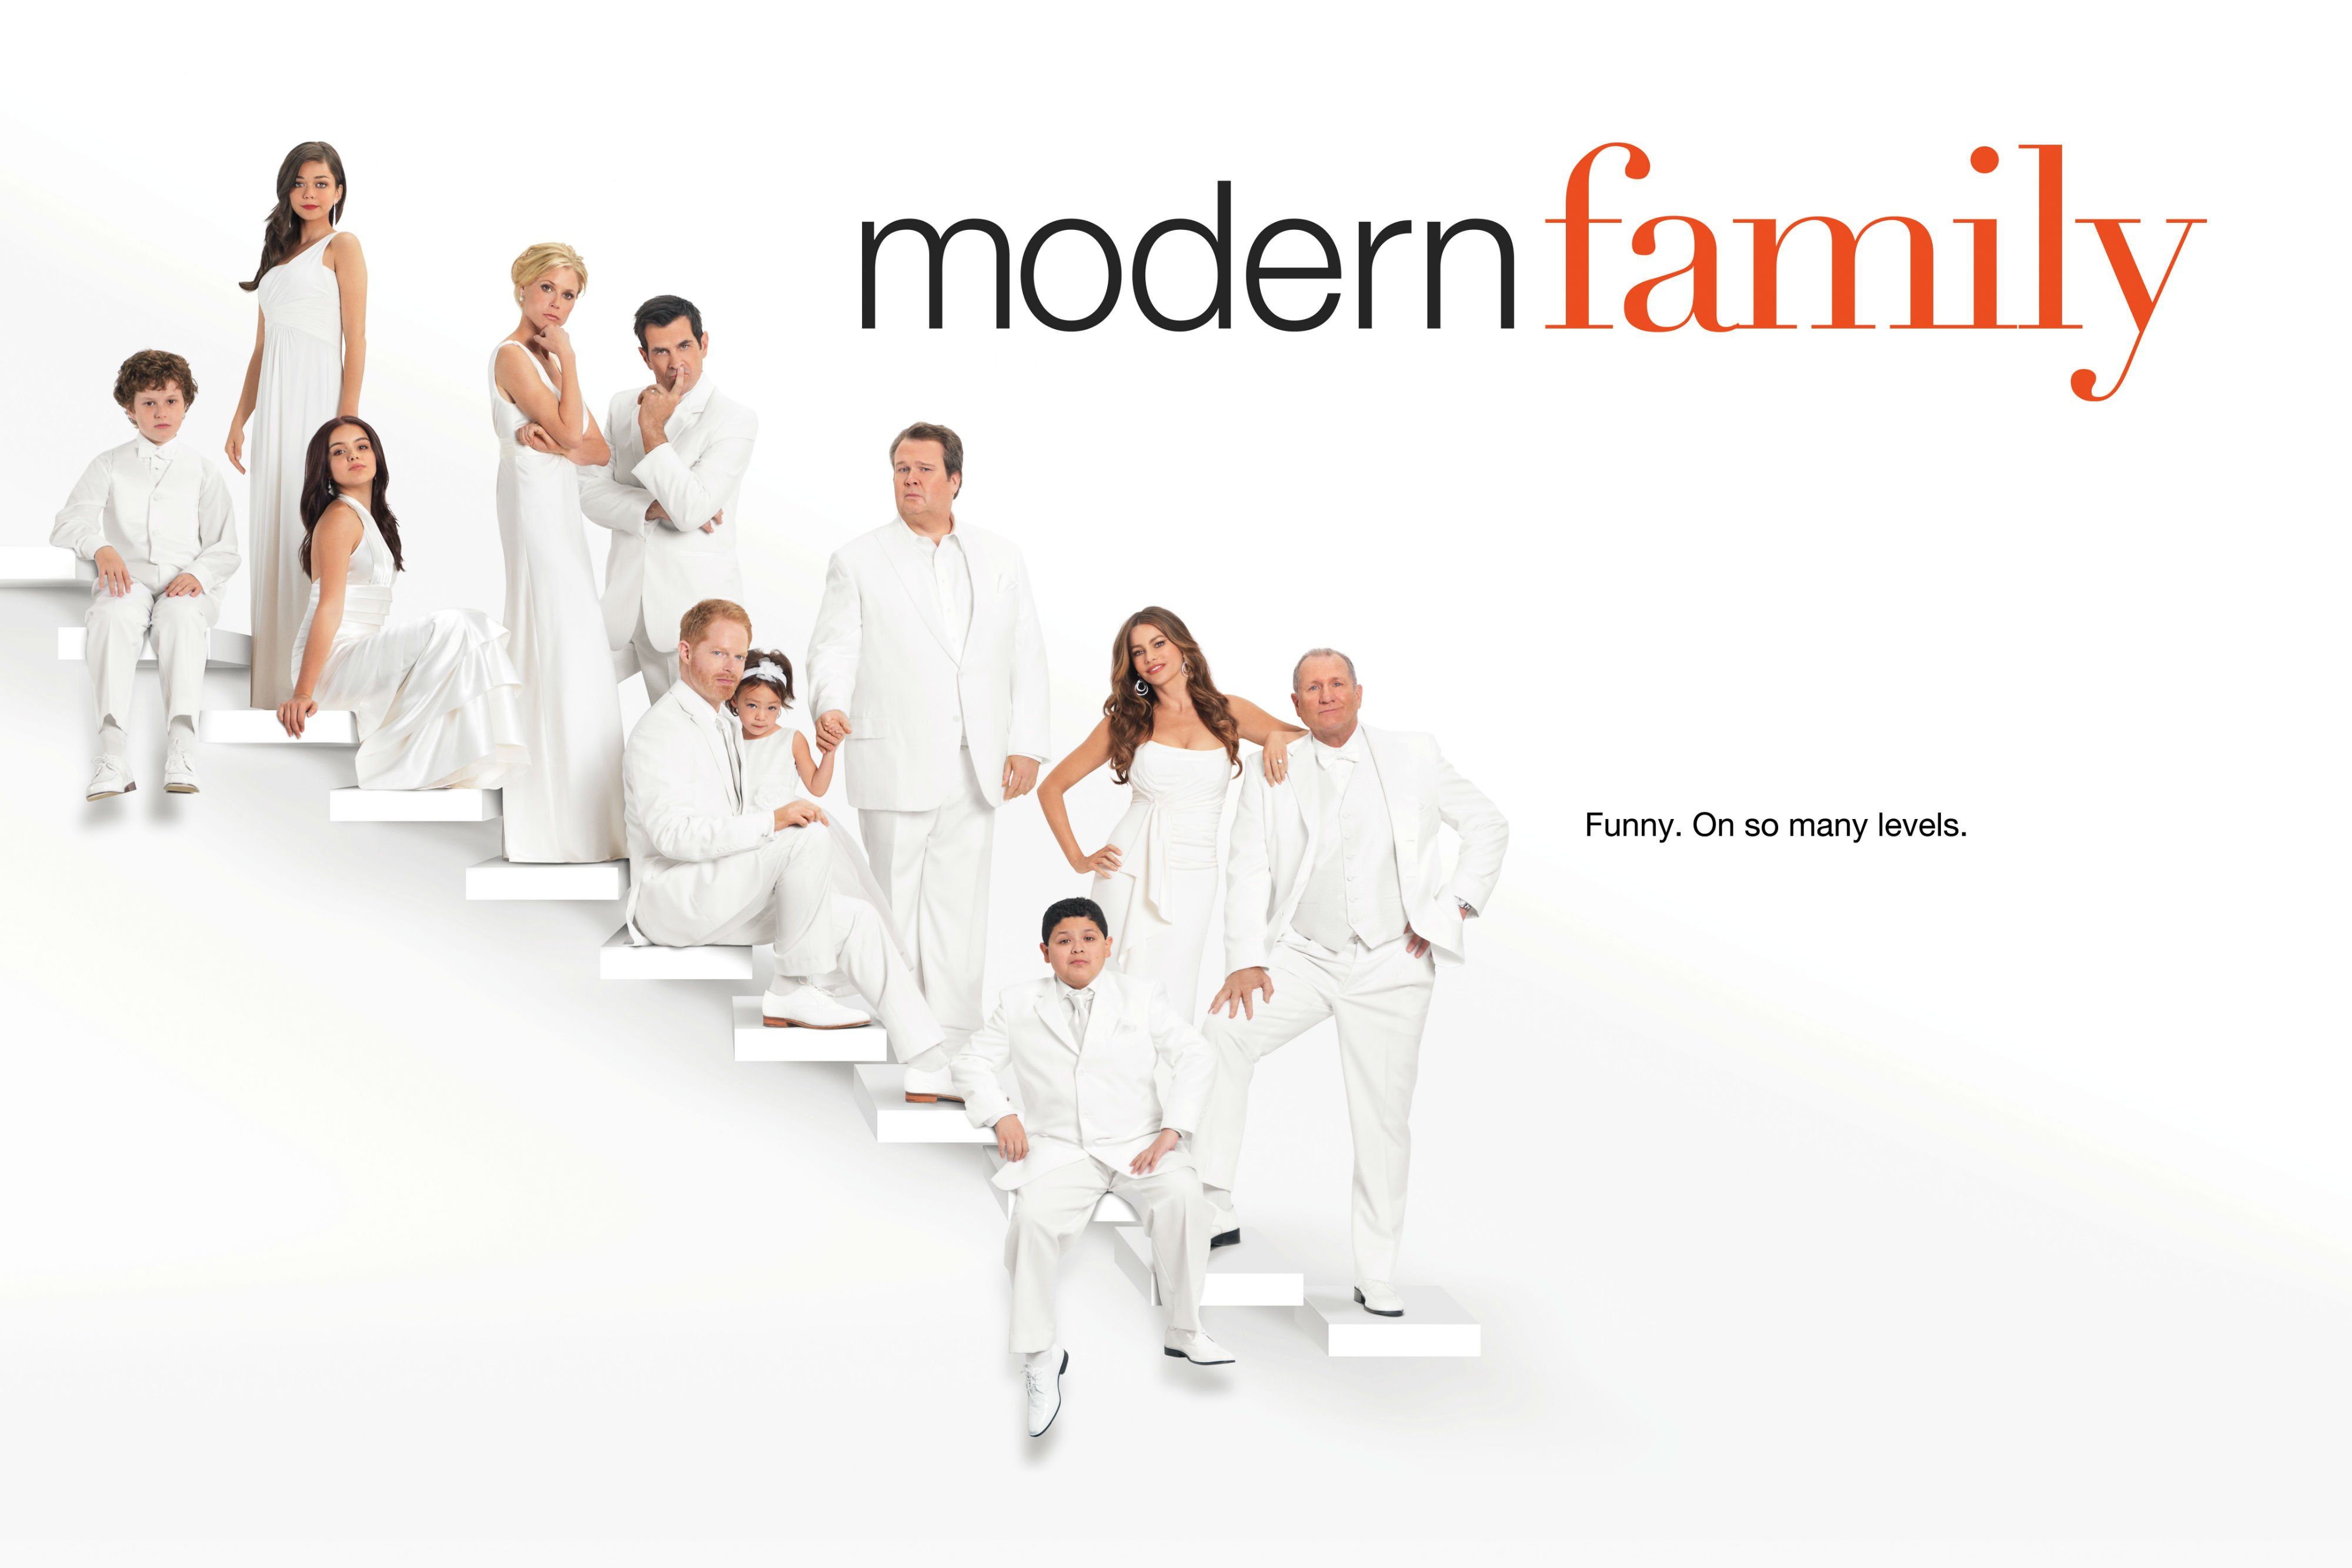 Modern family wallpaper 4 for Modern family wallpaper